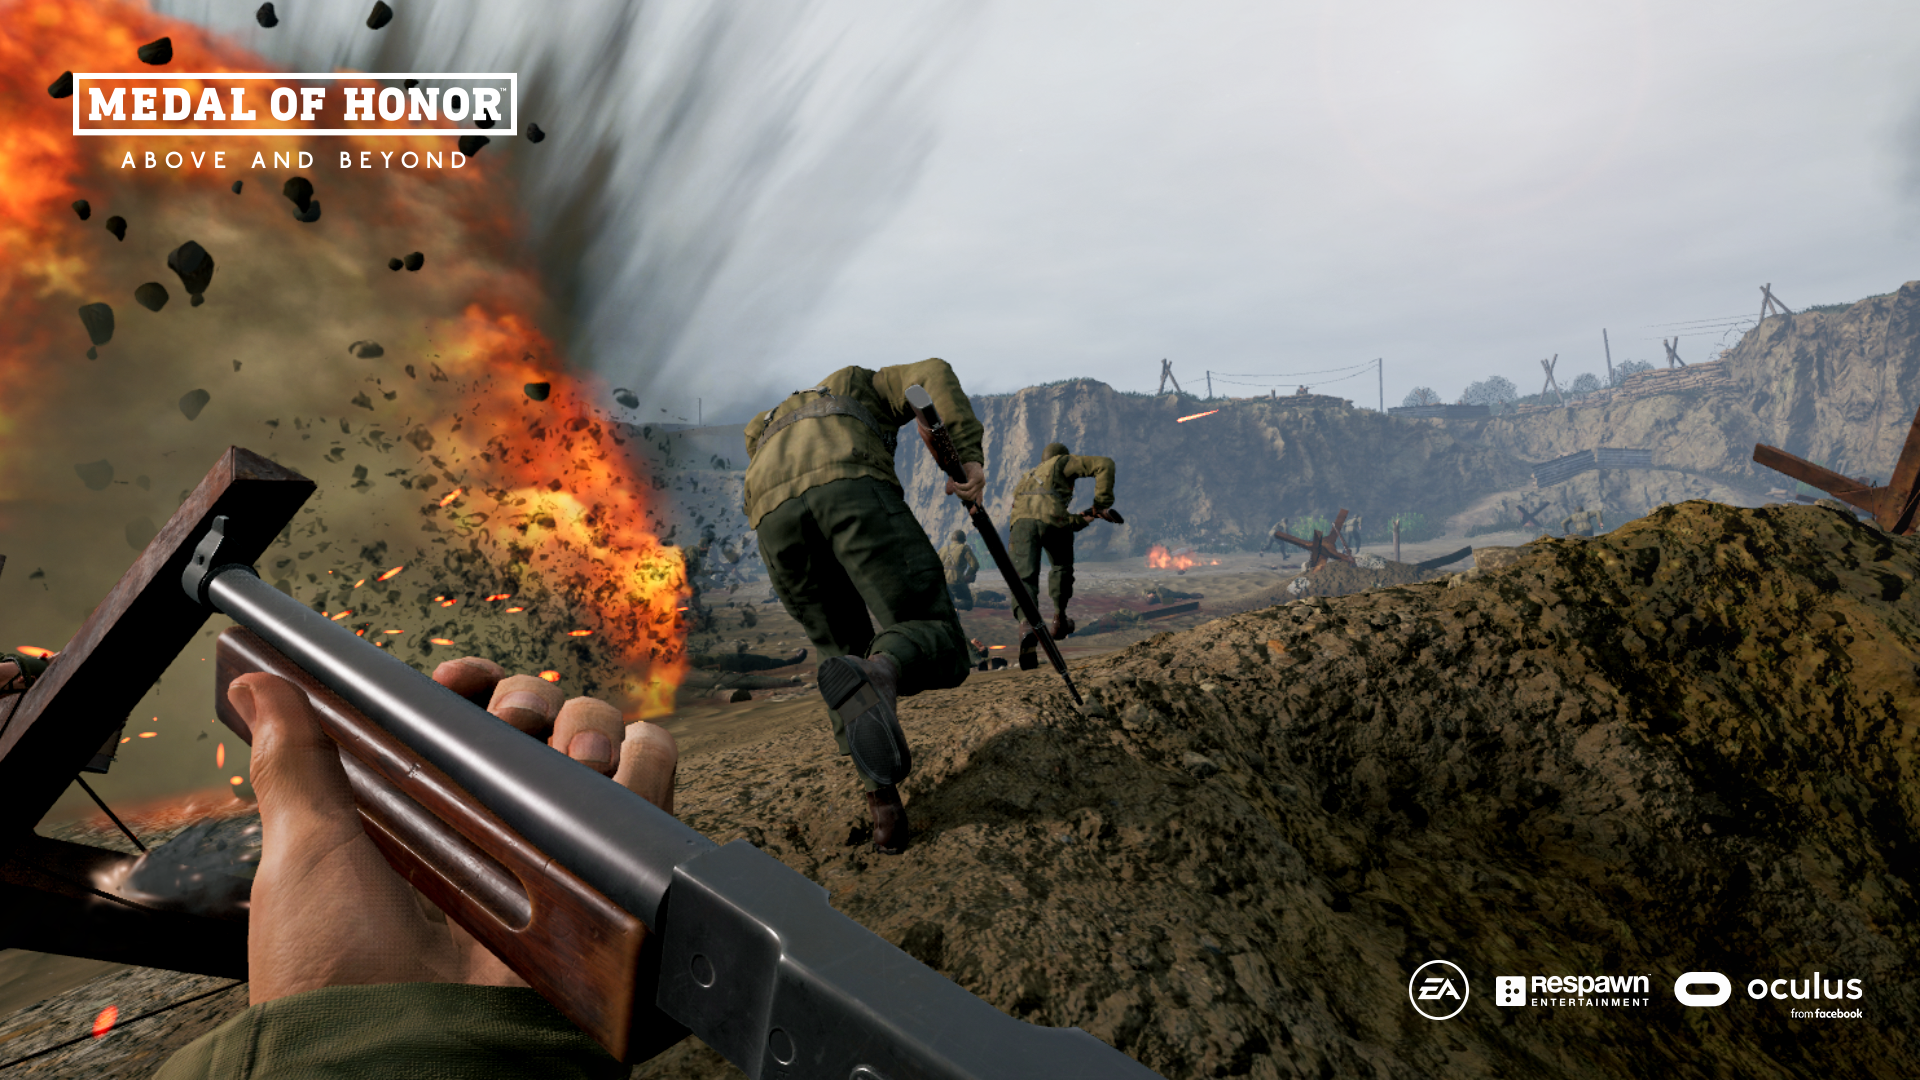 A scene from the upcoming virtual-reality game Medal of Honor: Above and Beyond.